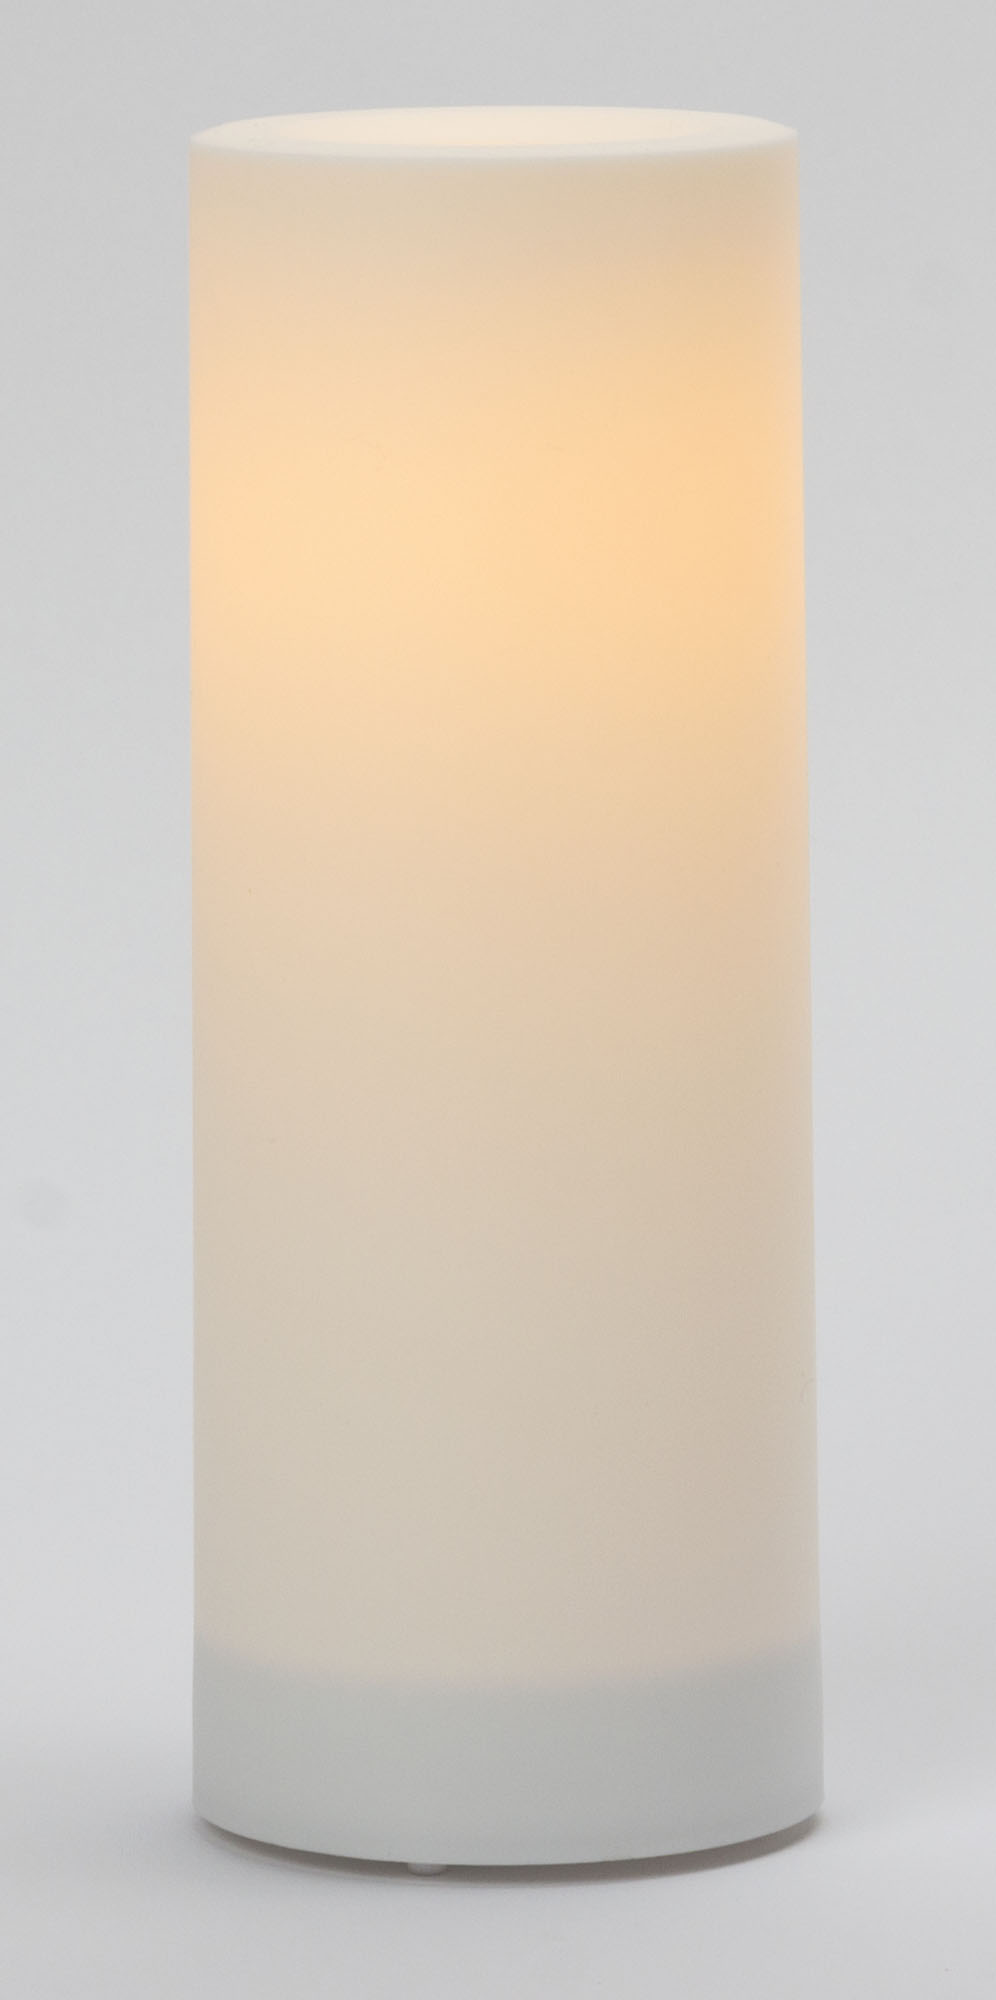 8x3 Inch Flameless Outdoor Pillar Candle with Timer - White